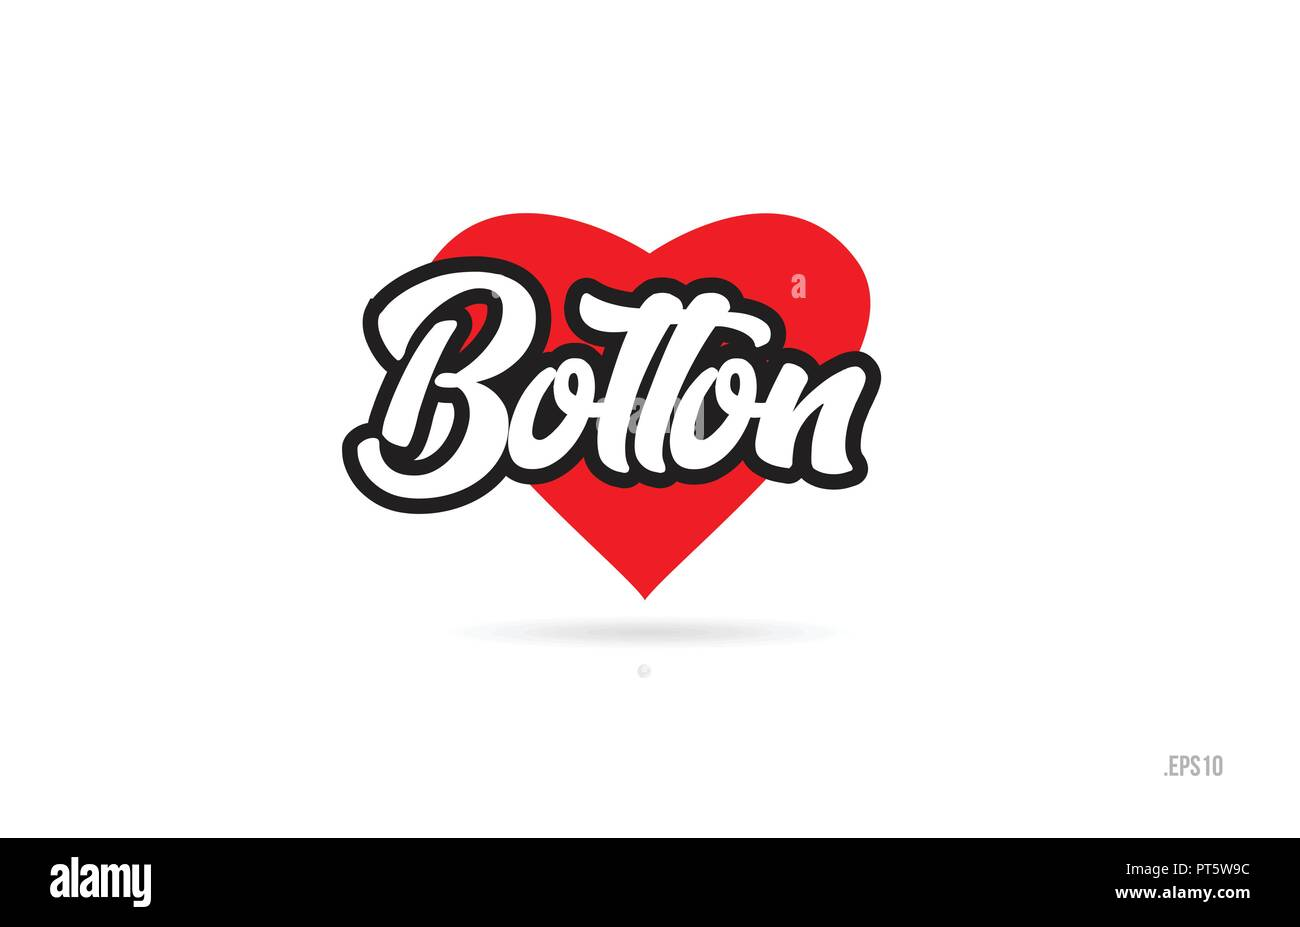 bolton city text design with red heart typographic icon design suitable for touristic promotion - Stock Image